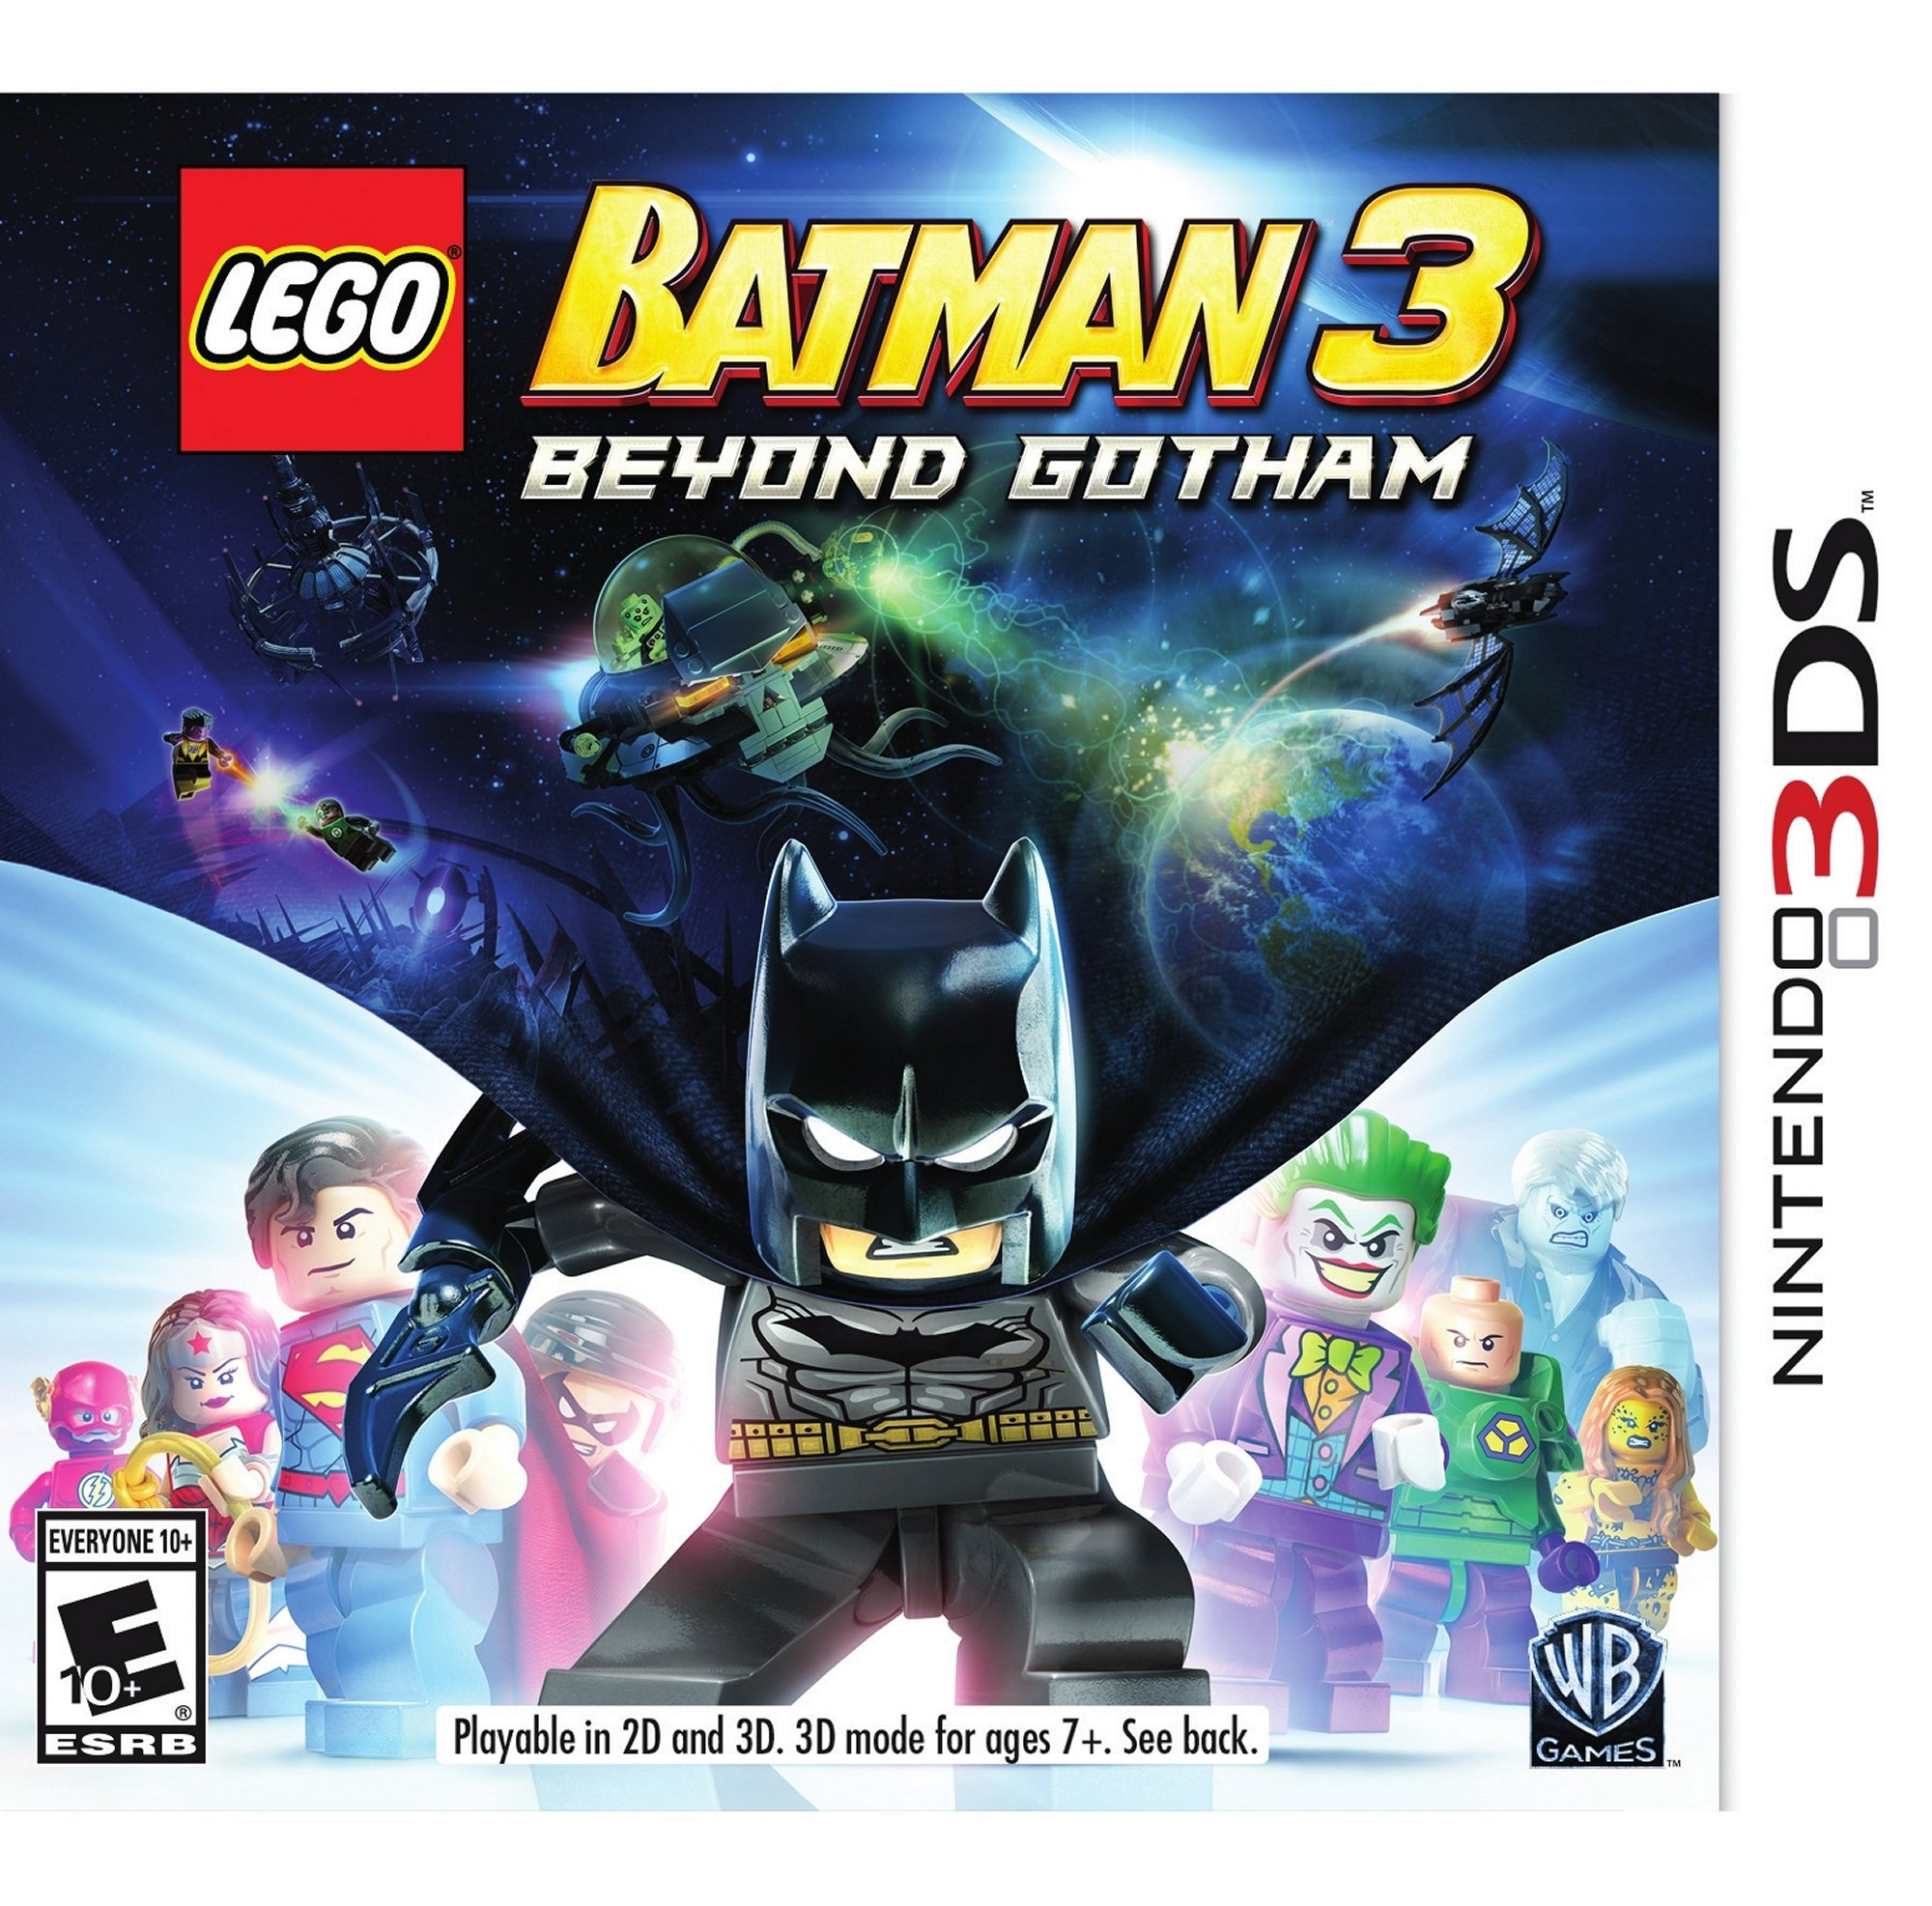 Eidos 1000508736 3ds Lego Batman 3: Beyond Gotham